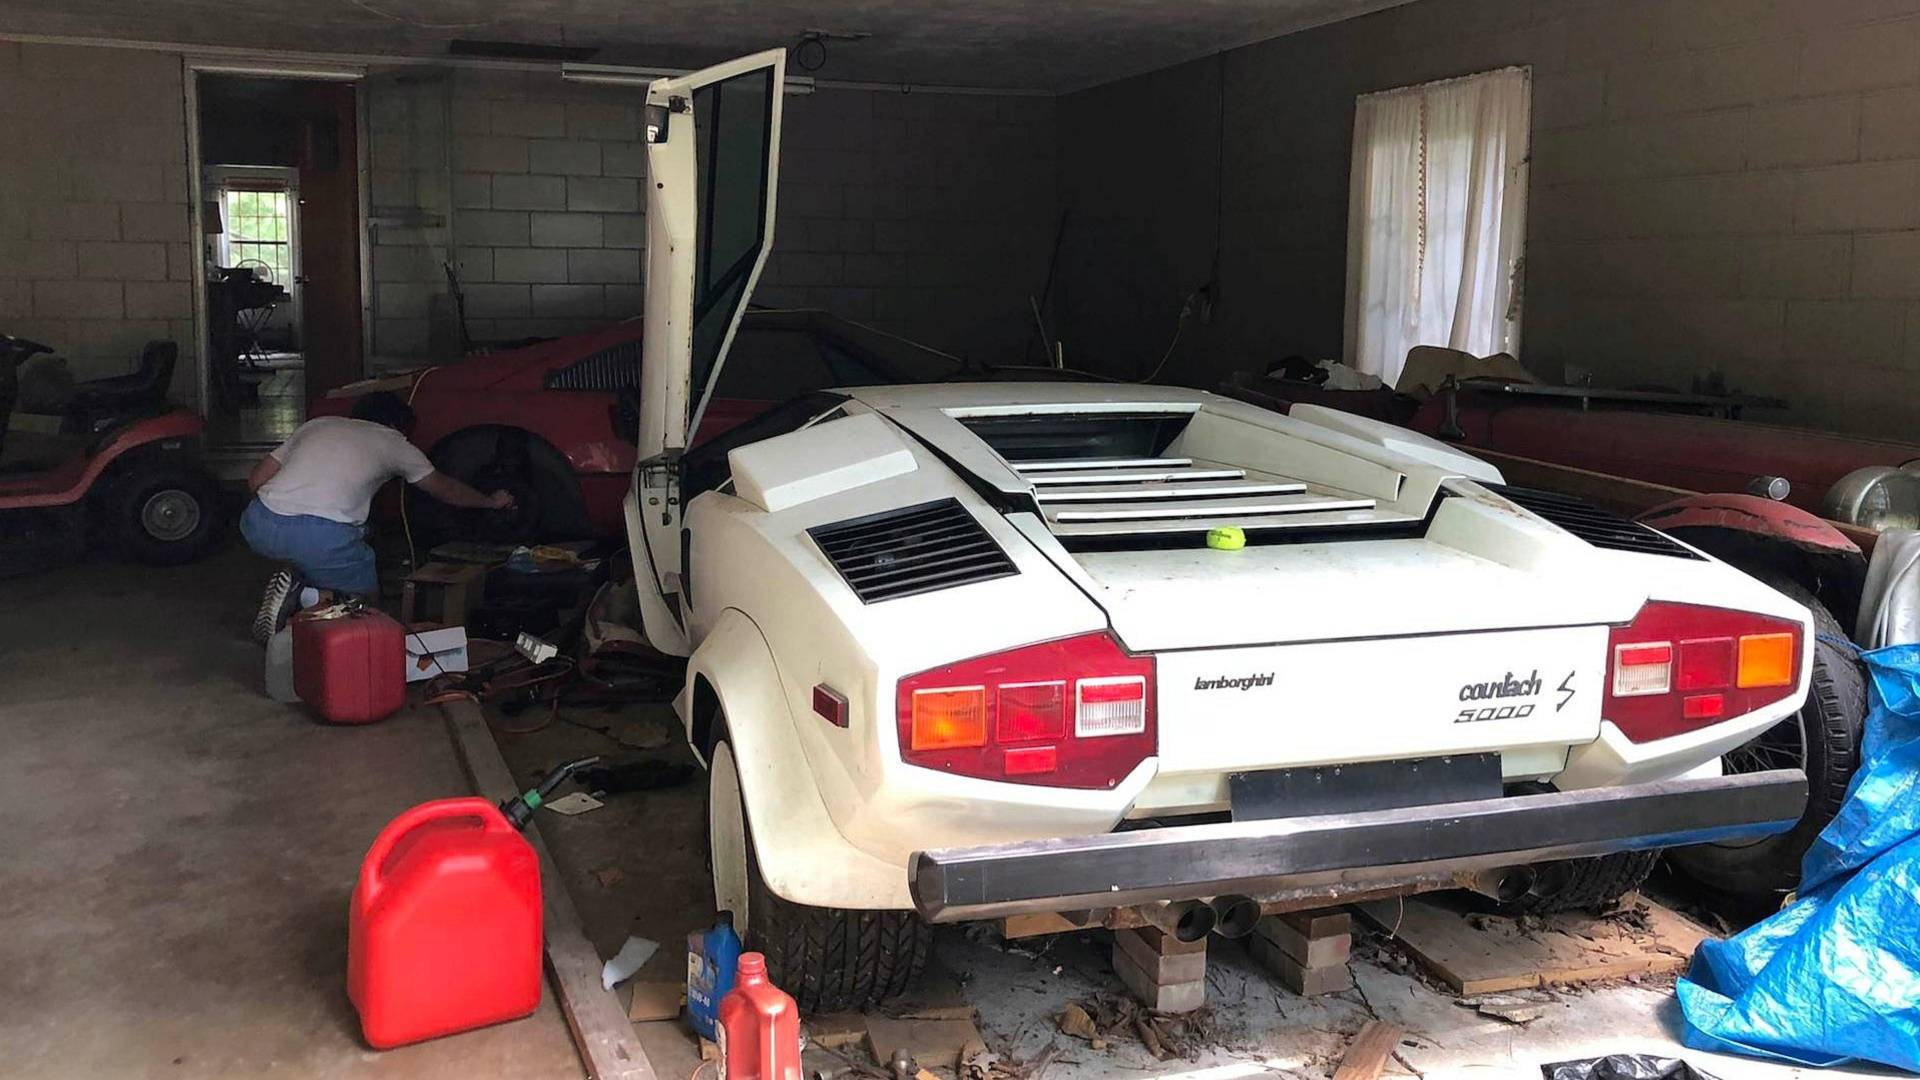 Countach Grandma S Lambo Uncovered From Storage After 2 Decades